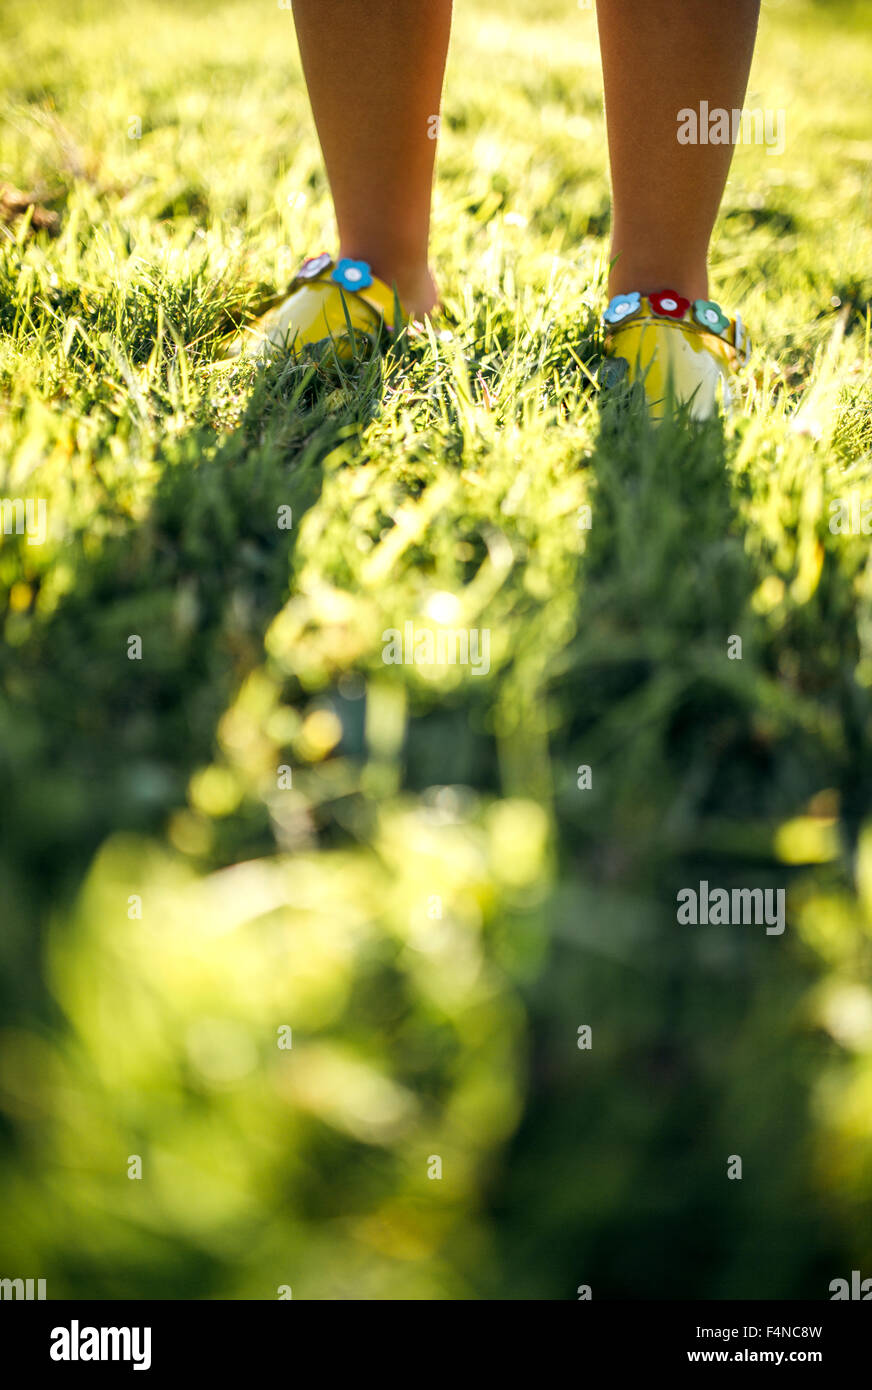 Feet of a little girl on the grass - Stock Image